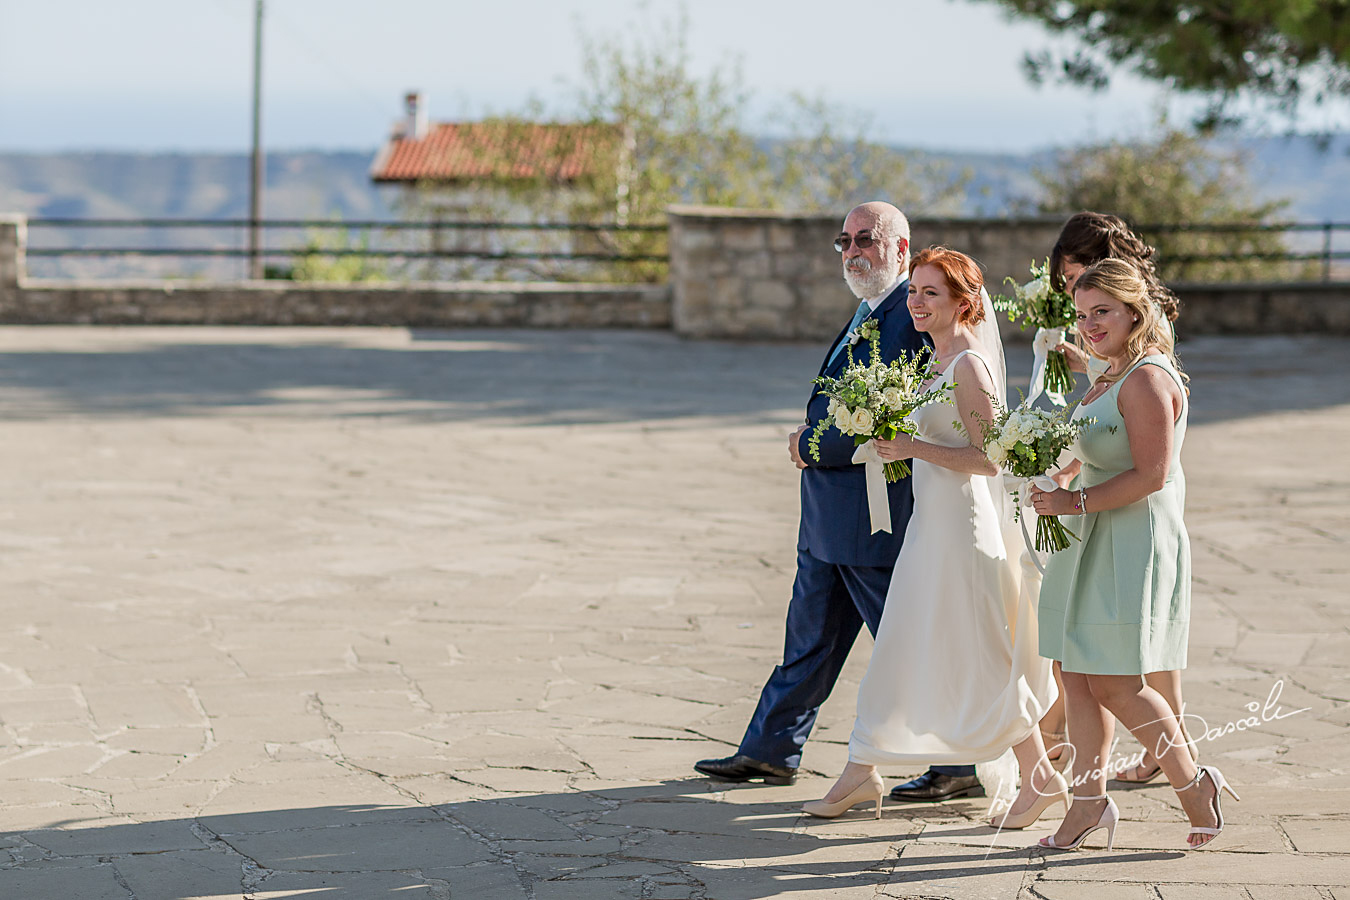 Wedding Celebration at Apokryfo - 34